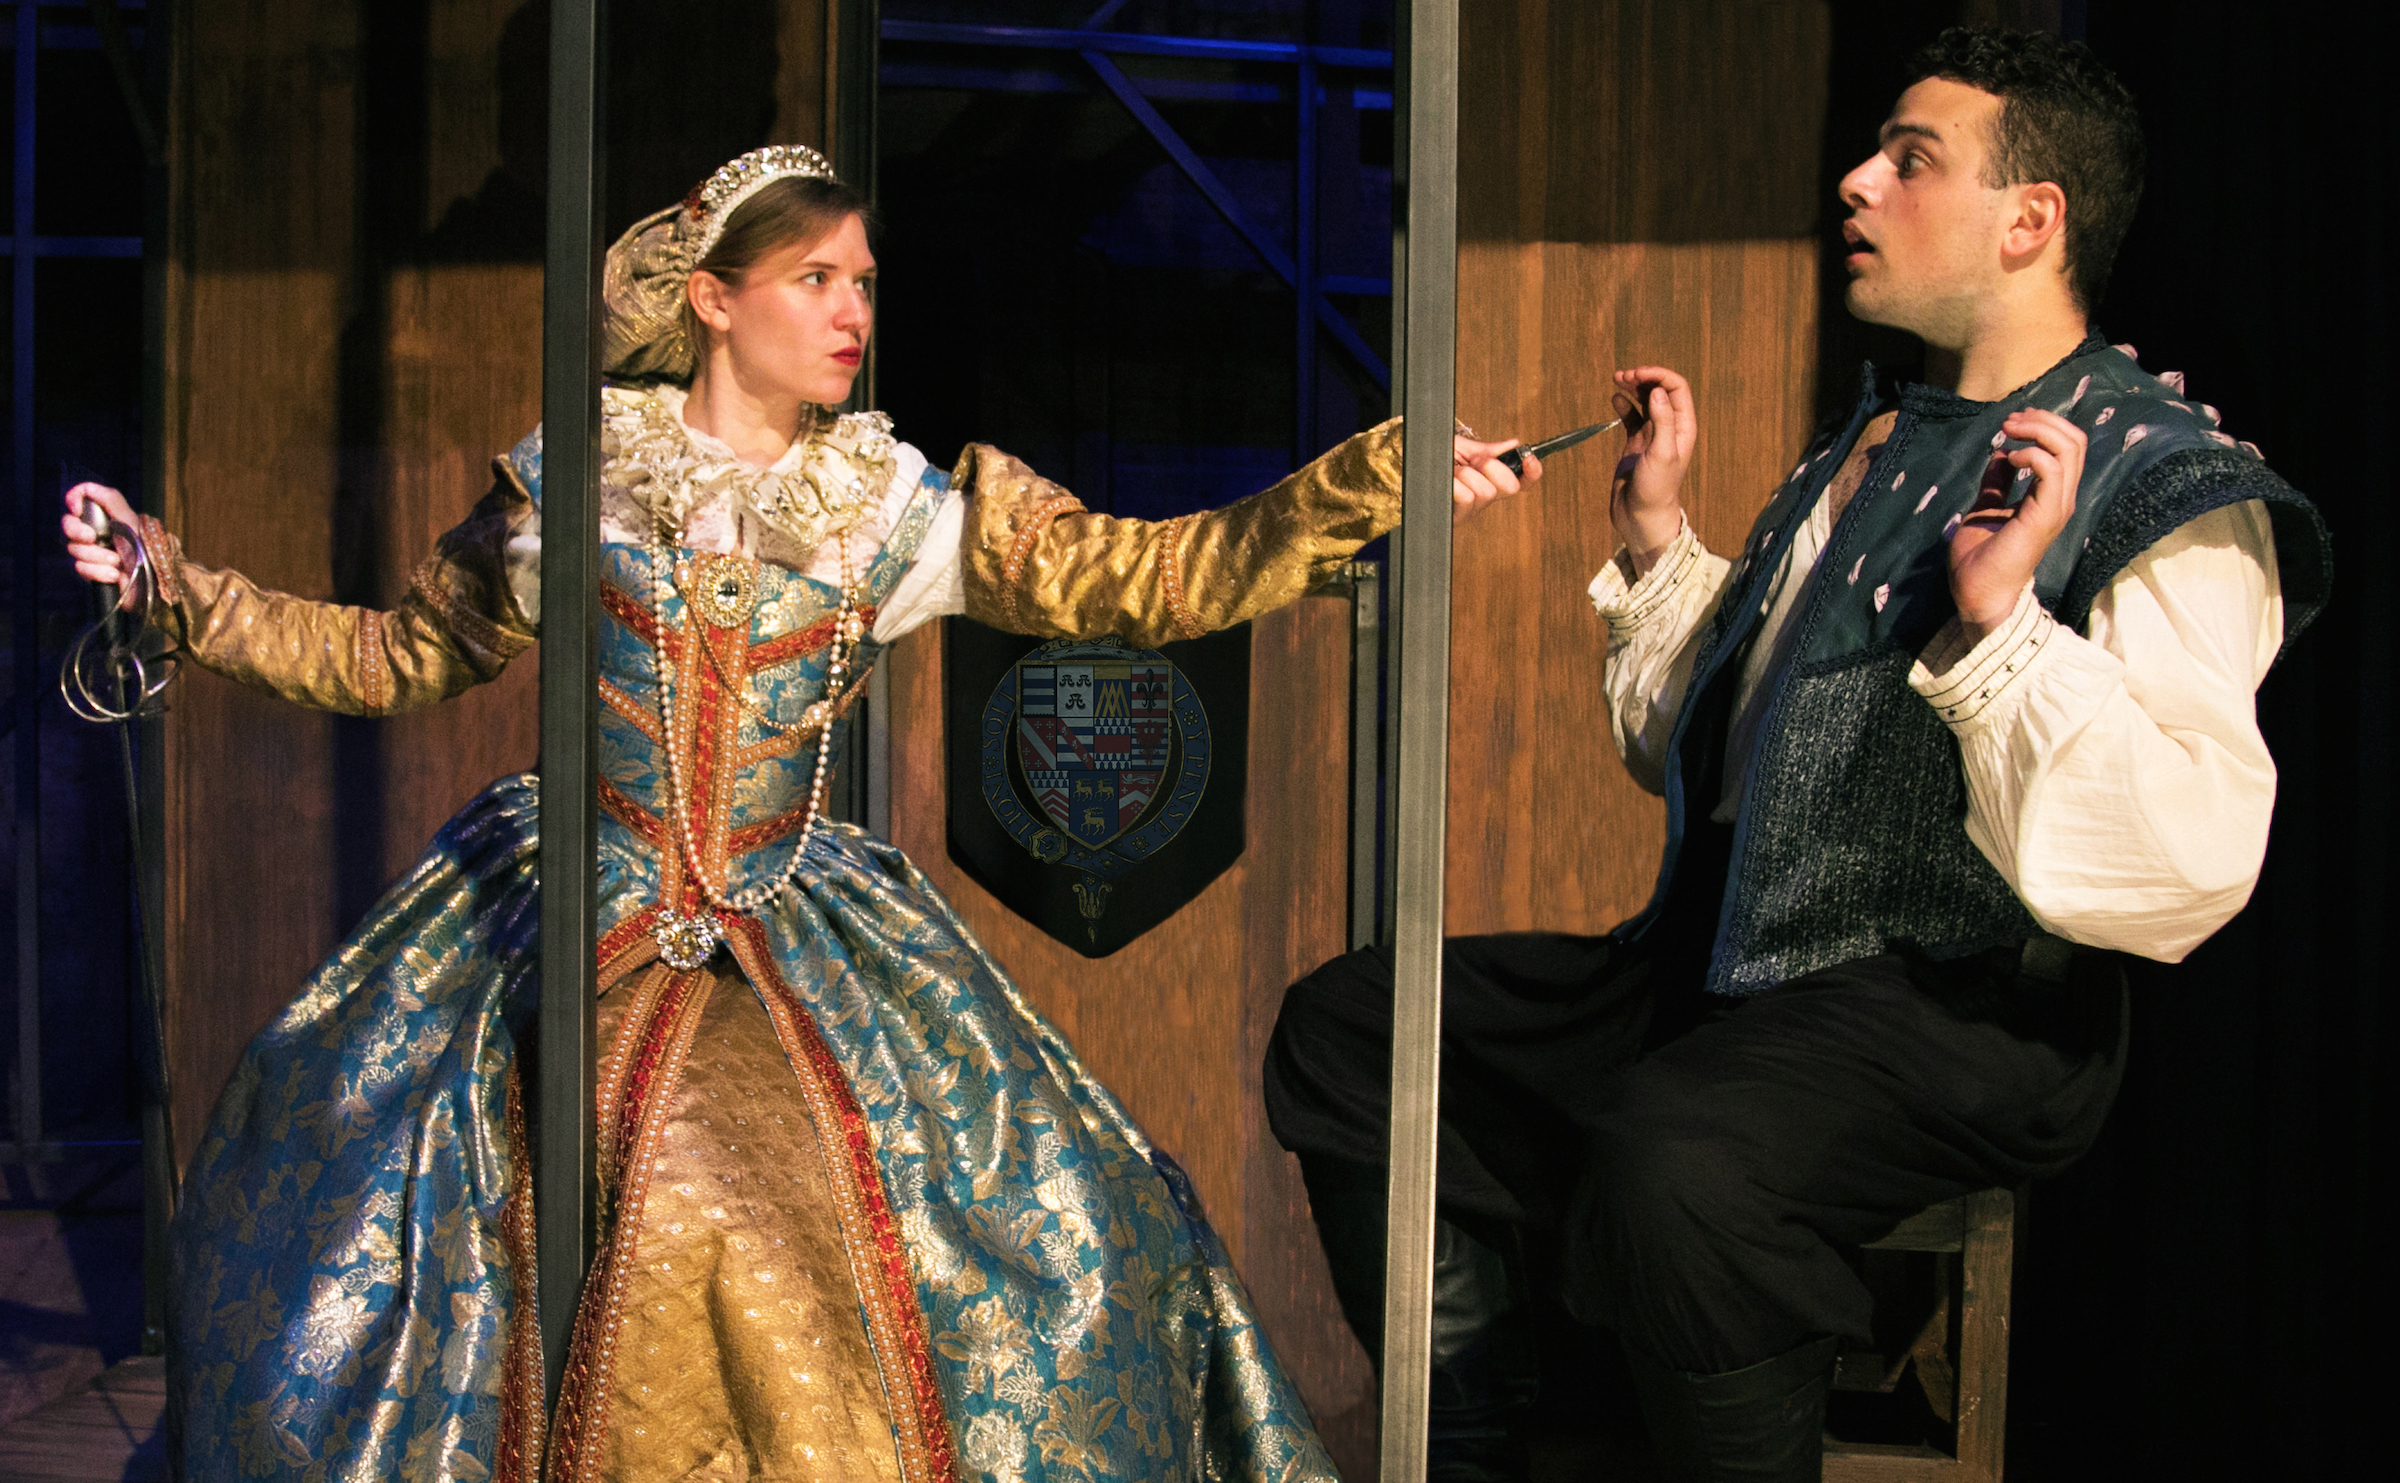 (L to R) Heather Chrisler as Lady Helena and Javier Ferreira as William Shakespeare. Photo by Cole Simon.